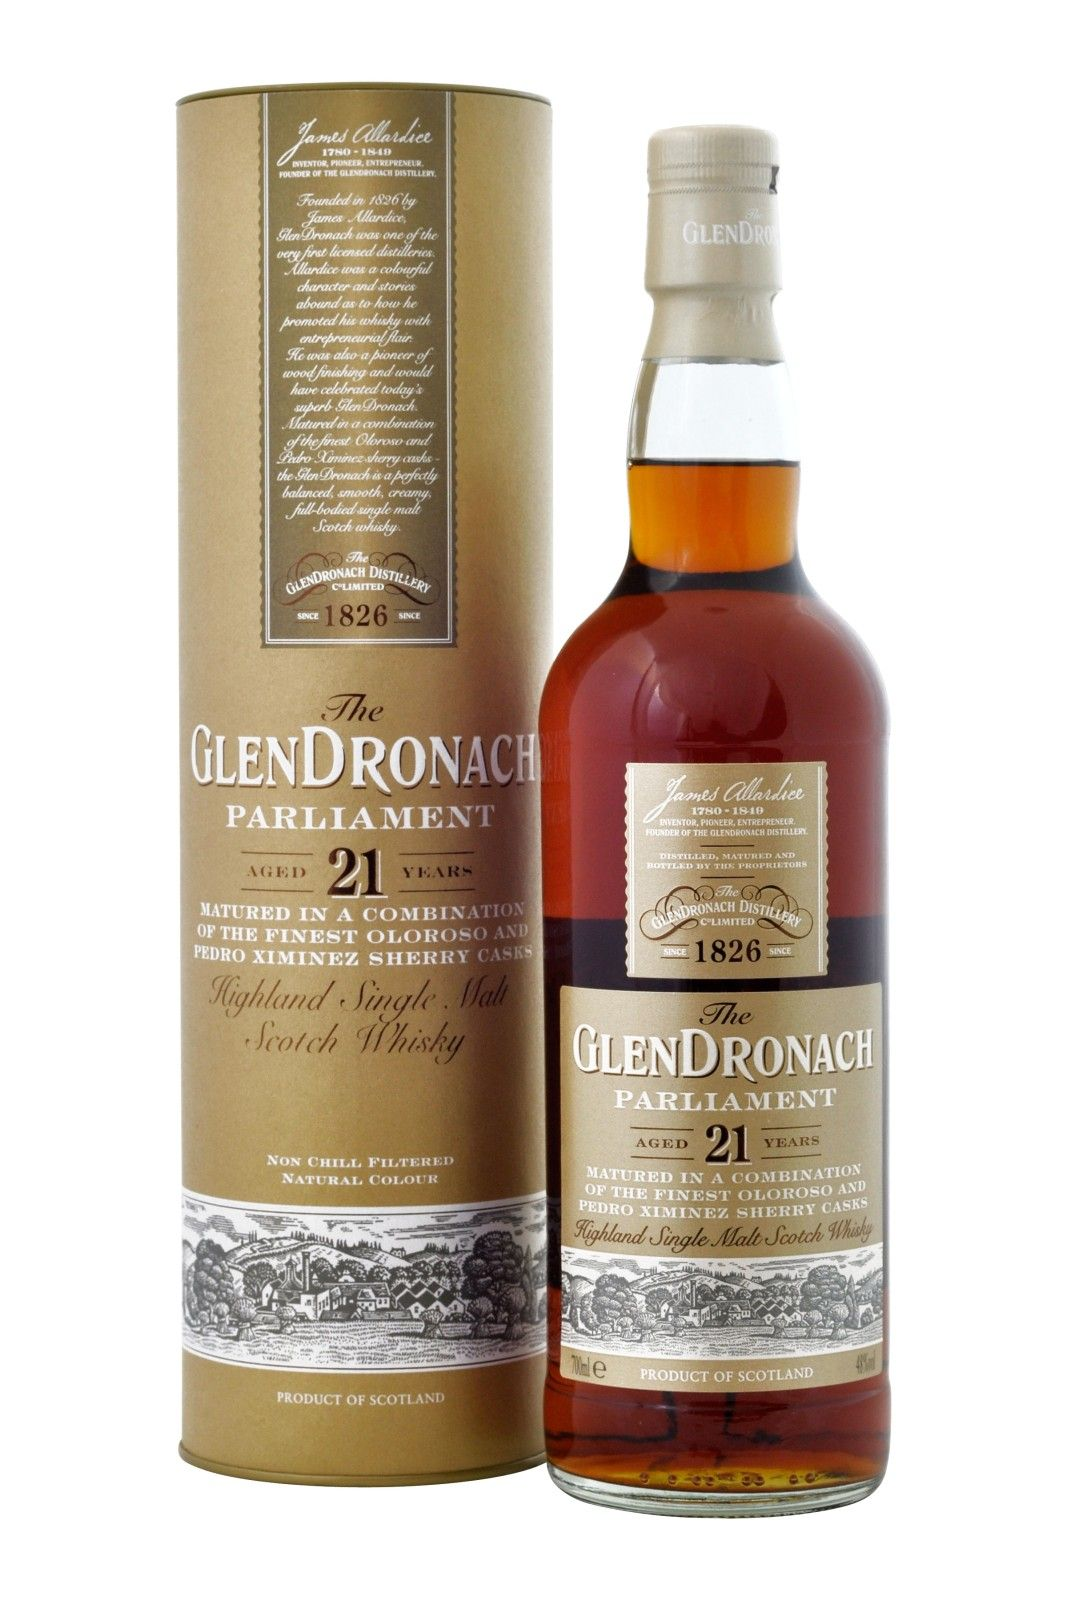 Glendronach Parliament 21 Year Old Whisky 21 Years Old Wine Bottle